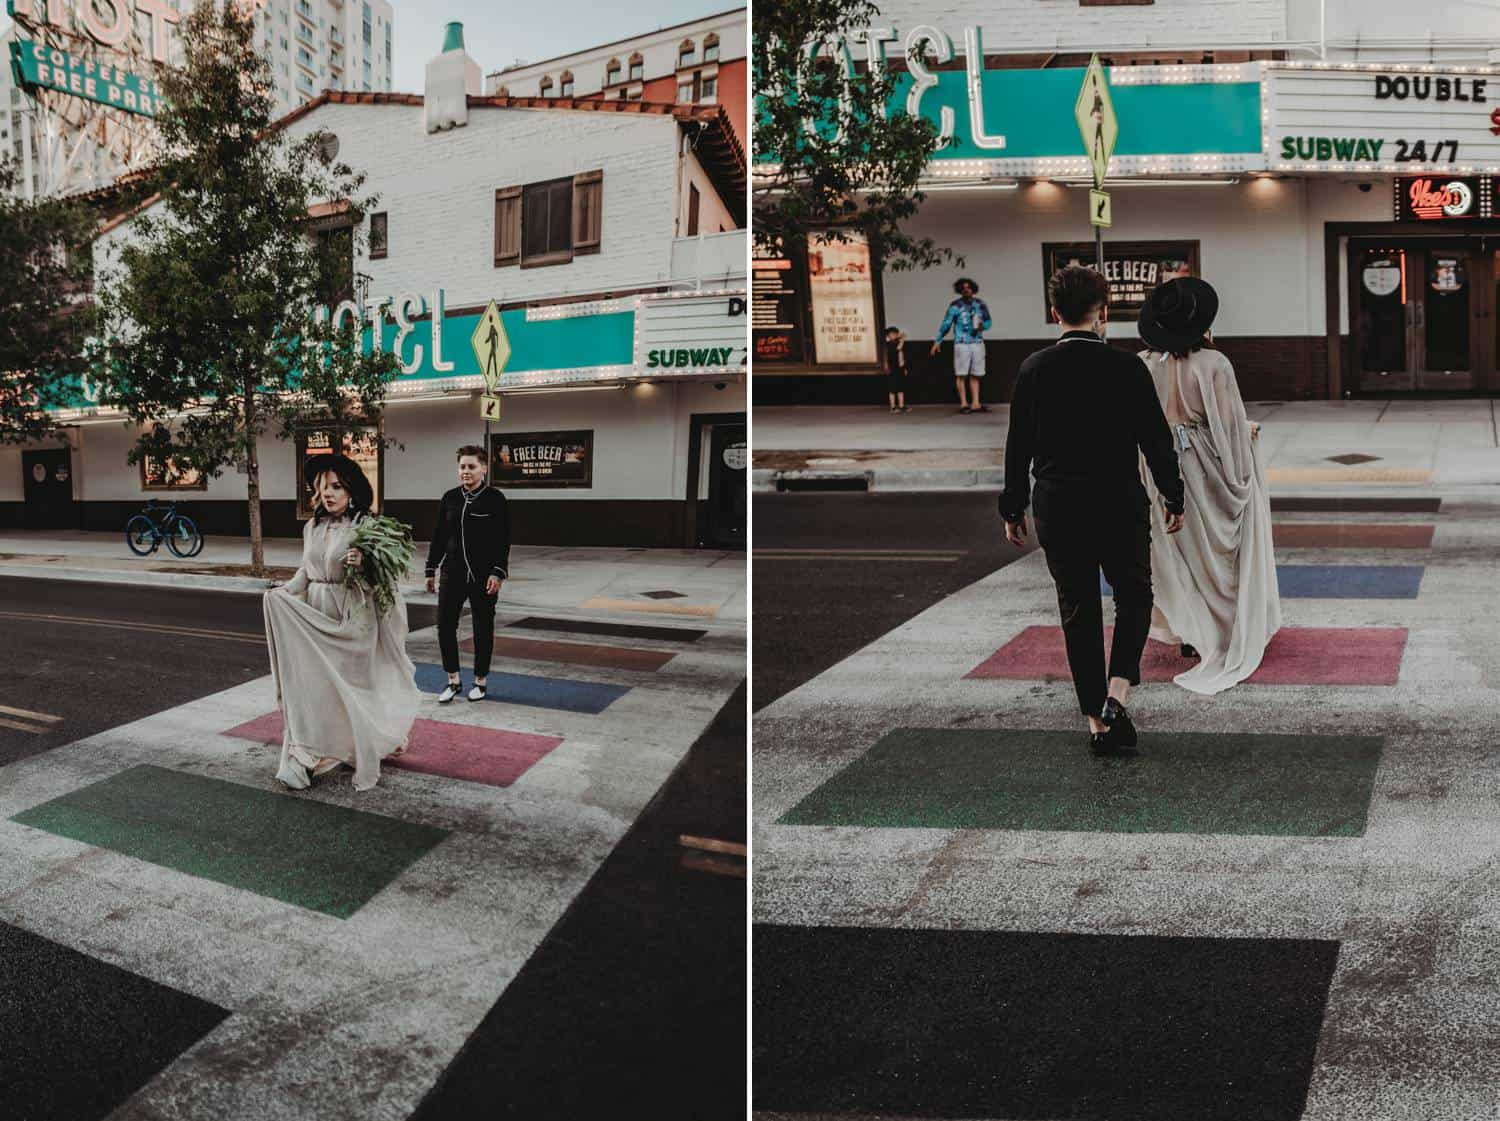 Two newlyweds walk across the street in Las Vegas using a crosswalk in this two-photo series